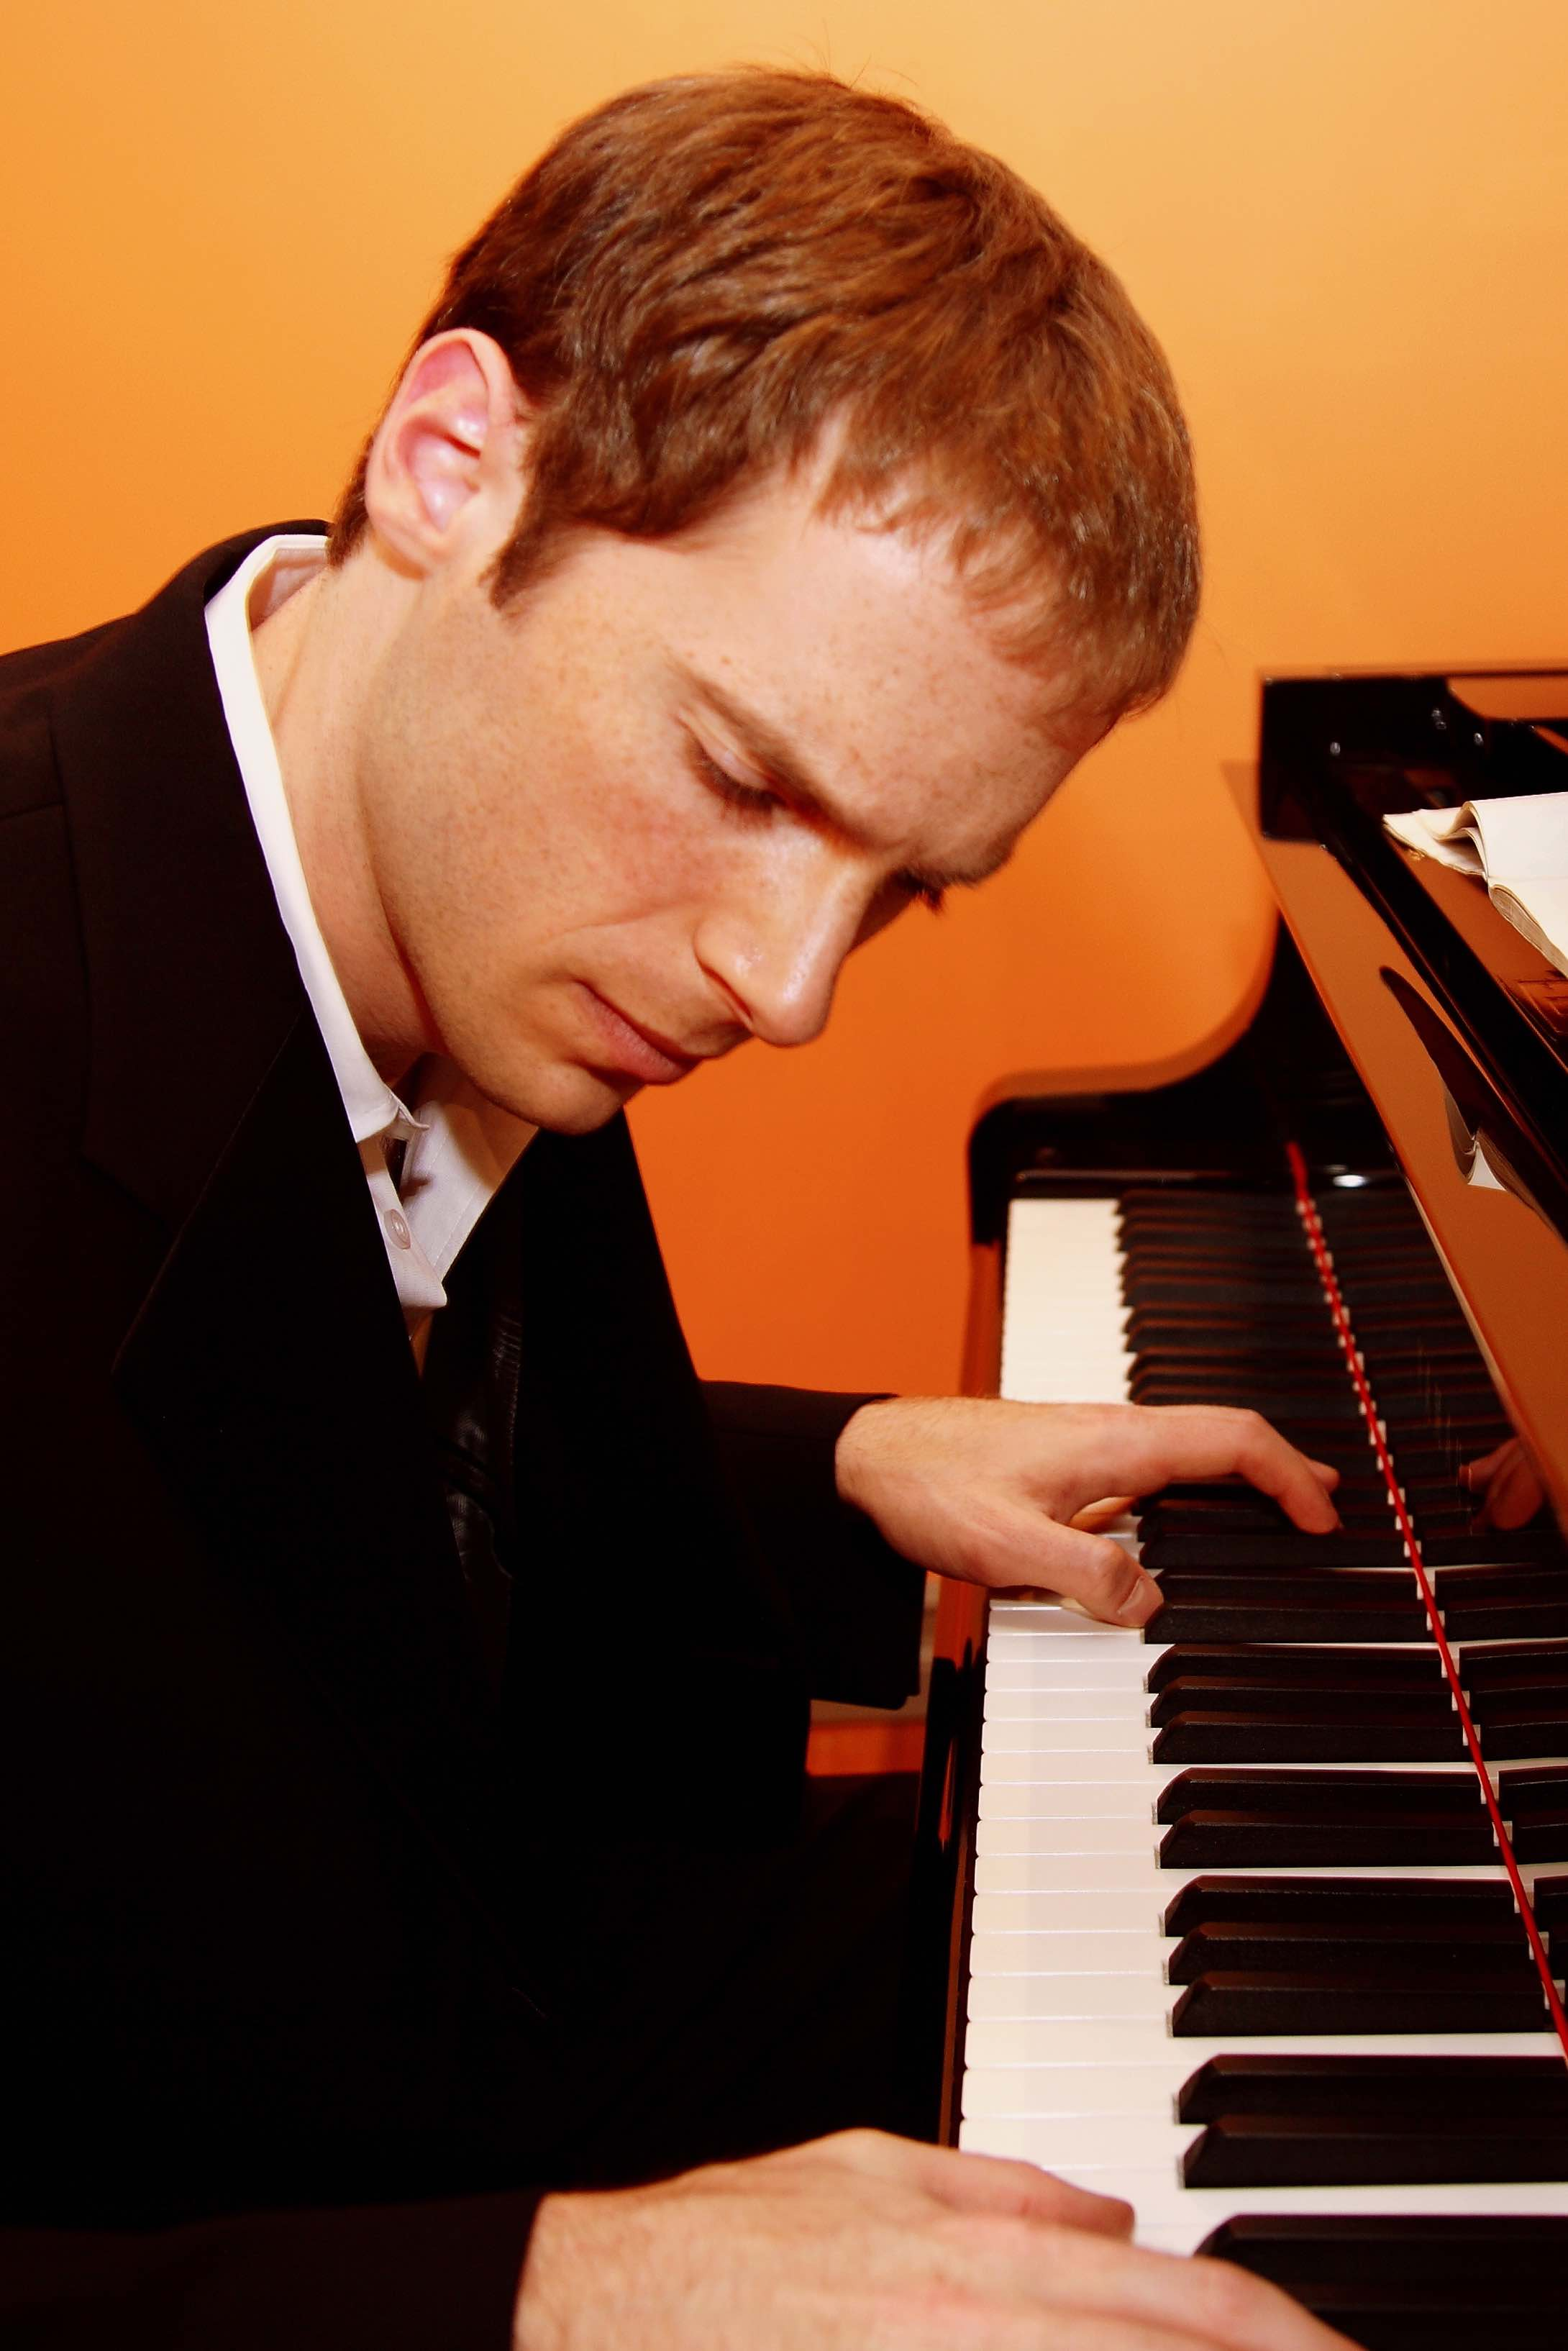 David Jalbert - one of Canada's stellar pianists